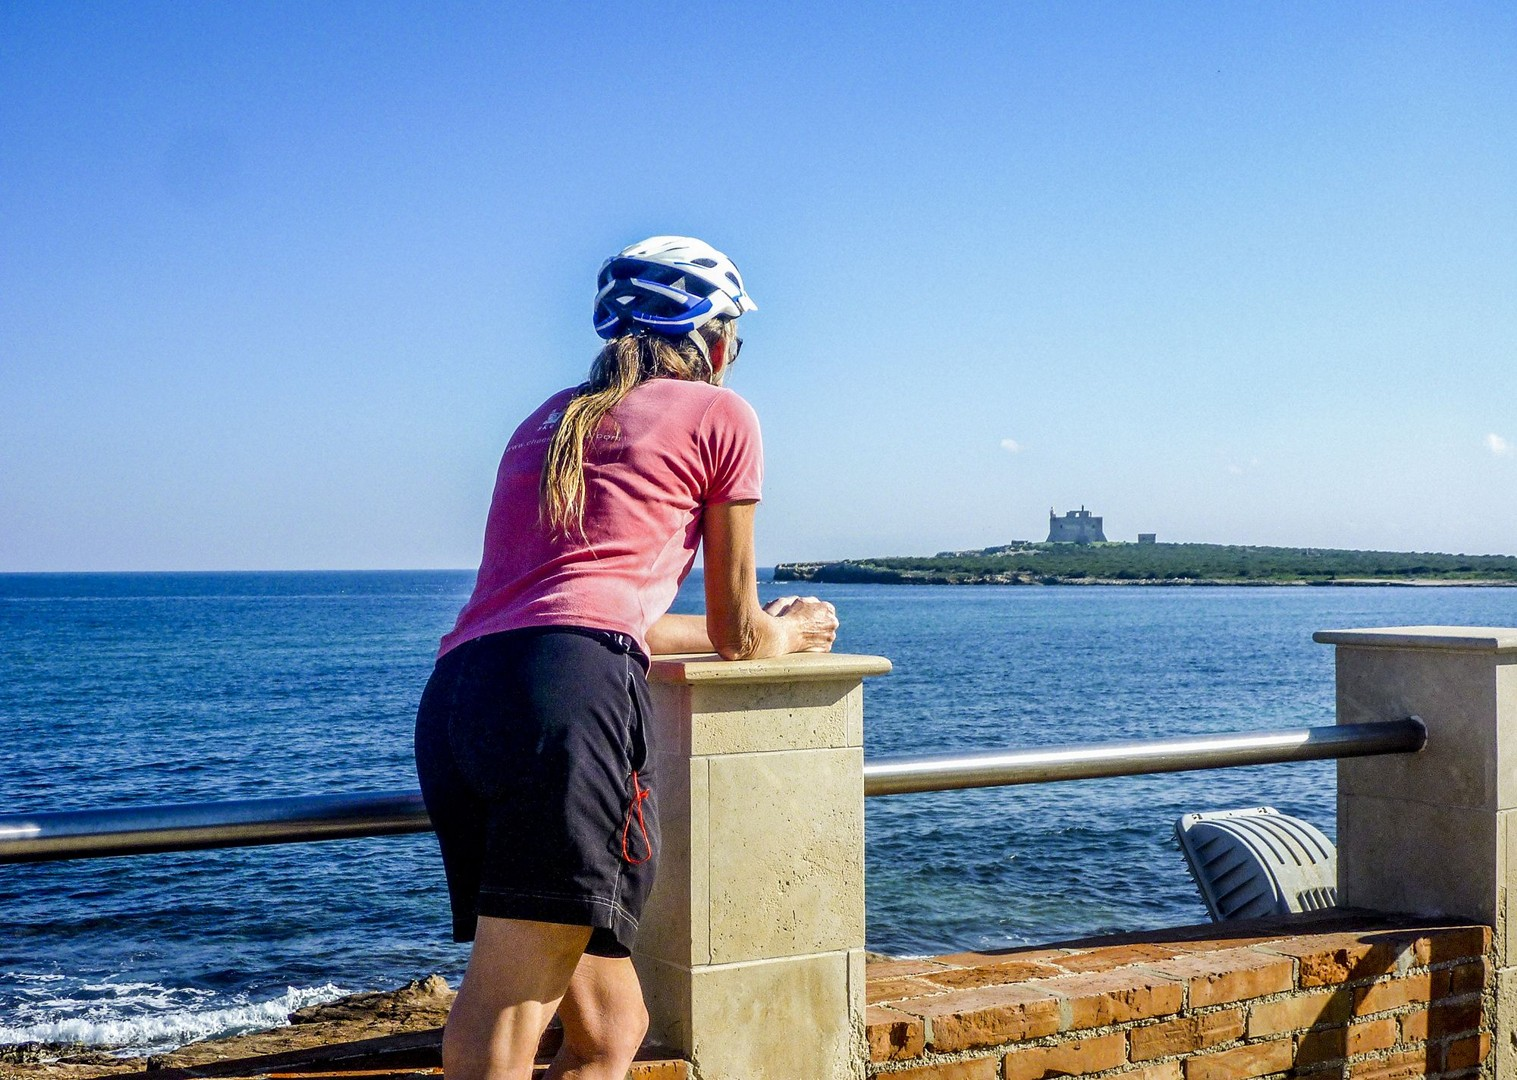 incredible-coastal-scenery-sicily-italy-capo-passero.jpg - Italy - Sicily - Self-Guided Leisure Cycling Holiday - Leisure Cycling